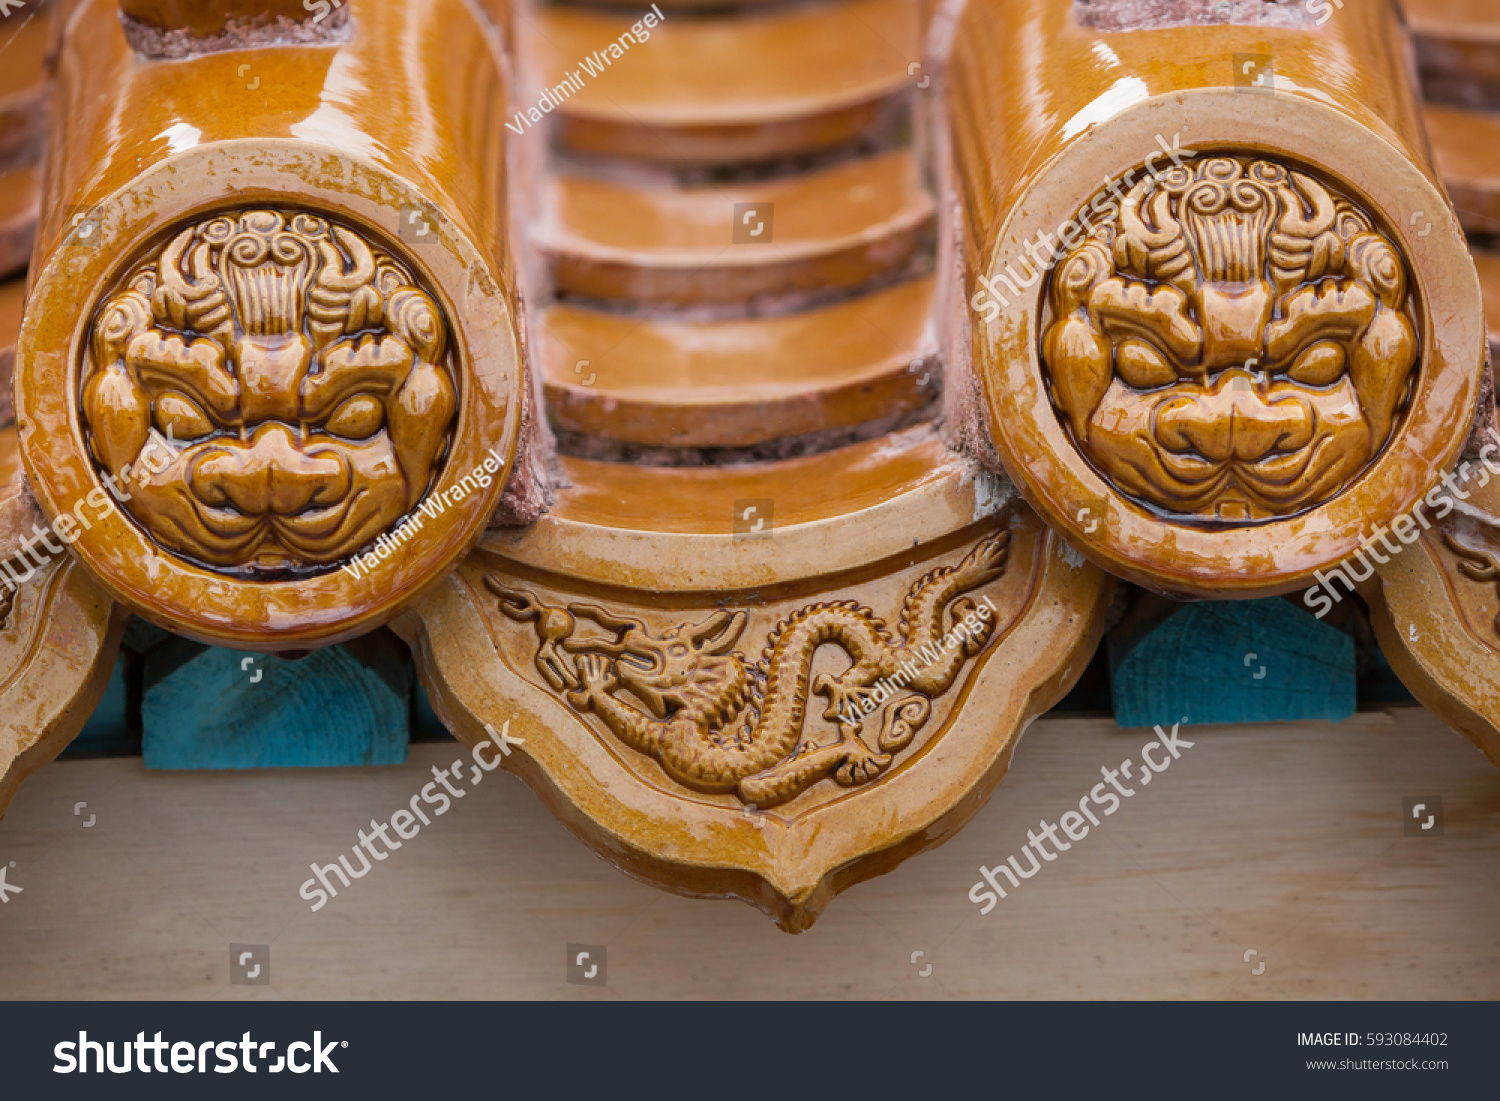 Traditional Chinese Glazed Roof Tiles Buildings Landmarks Stock Image 593084402